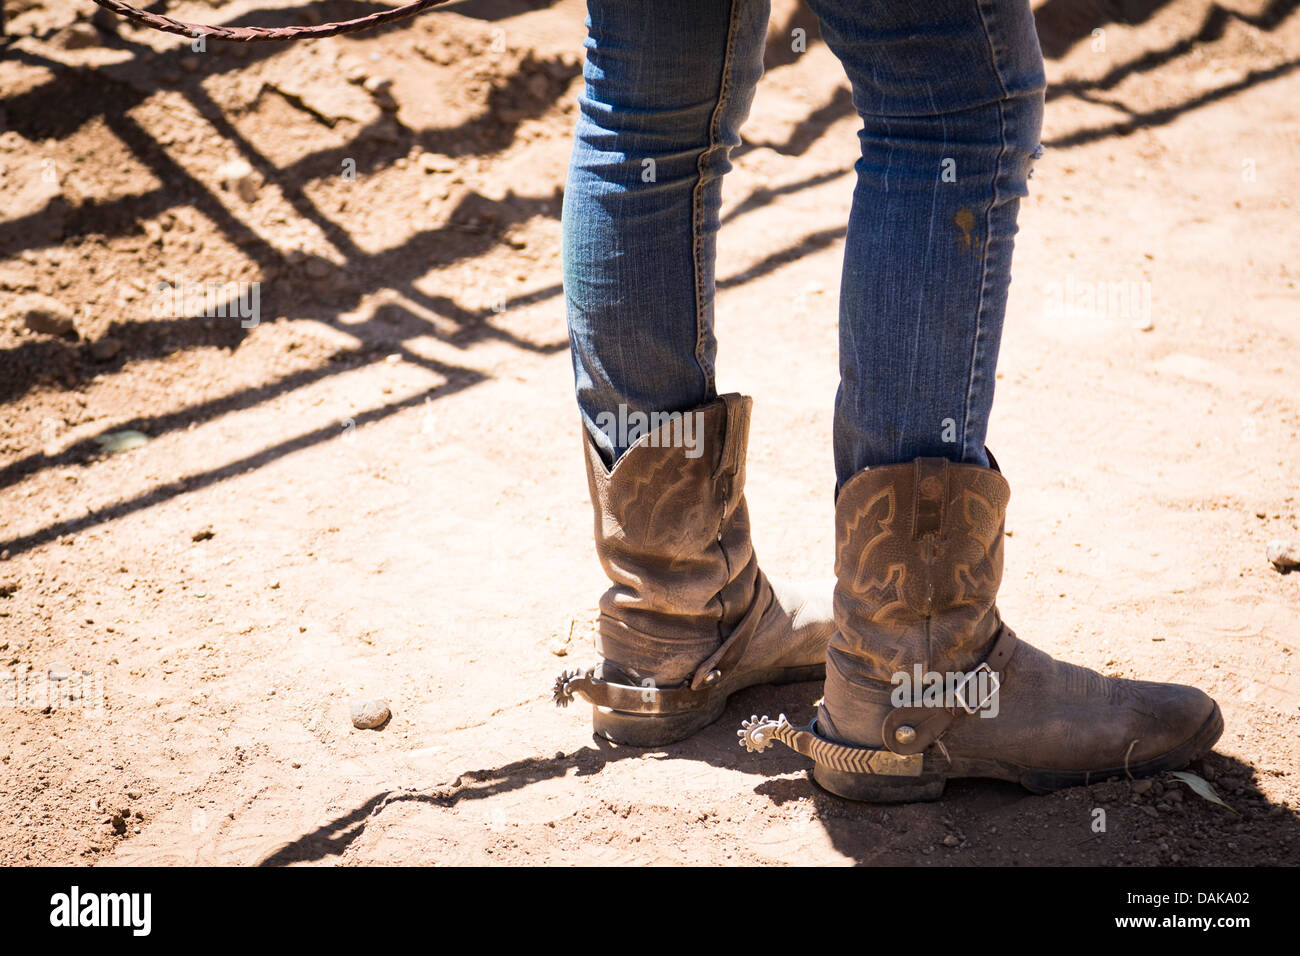 cowgirl boots stock photos cowgirl boots stock images alamy legs of a young w wearing cowgirl boots spurs stock image